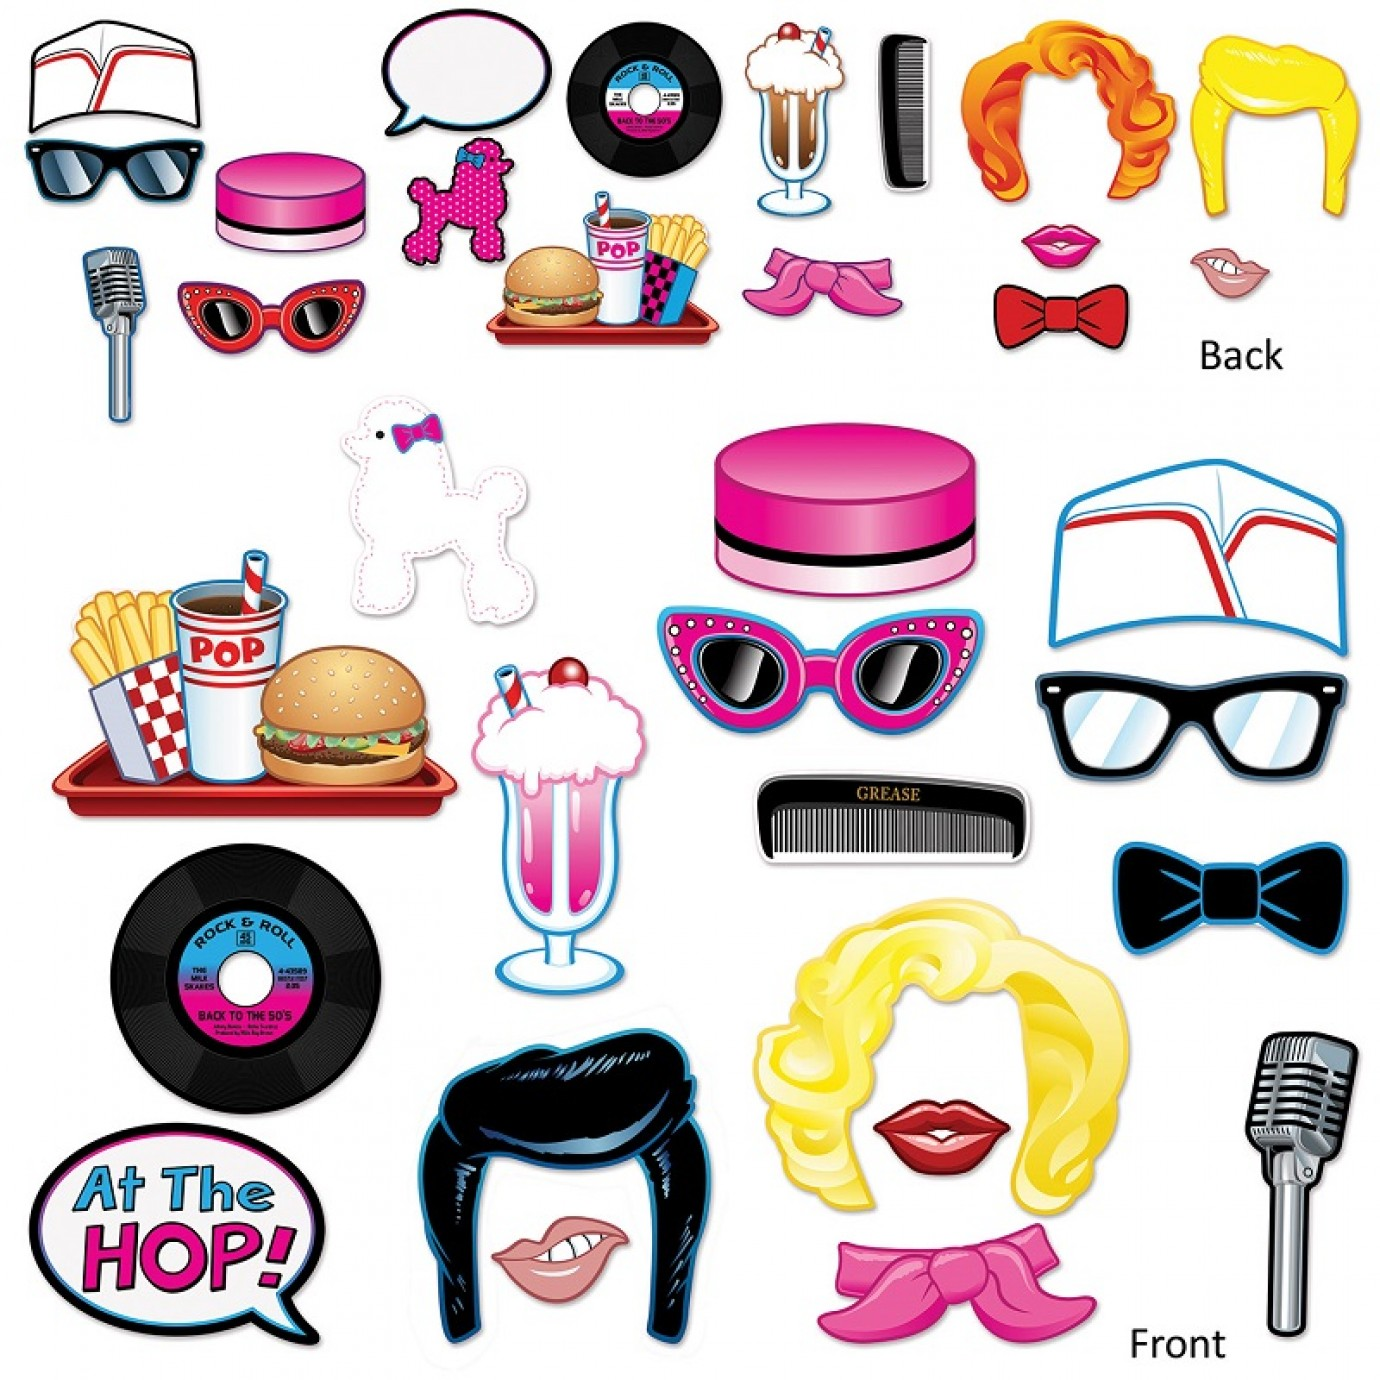 25ca34b19 Photo Booth Props - 1950's Fun | Photobooth Props | Props | Costume  Accessories | Costumes | The Party People Shop